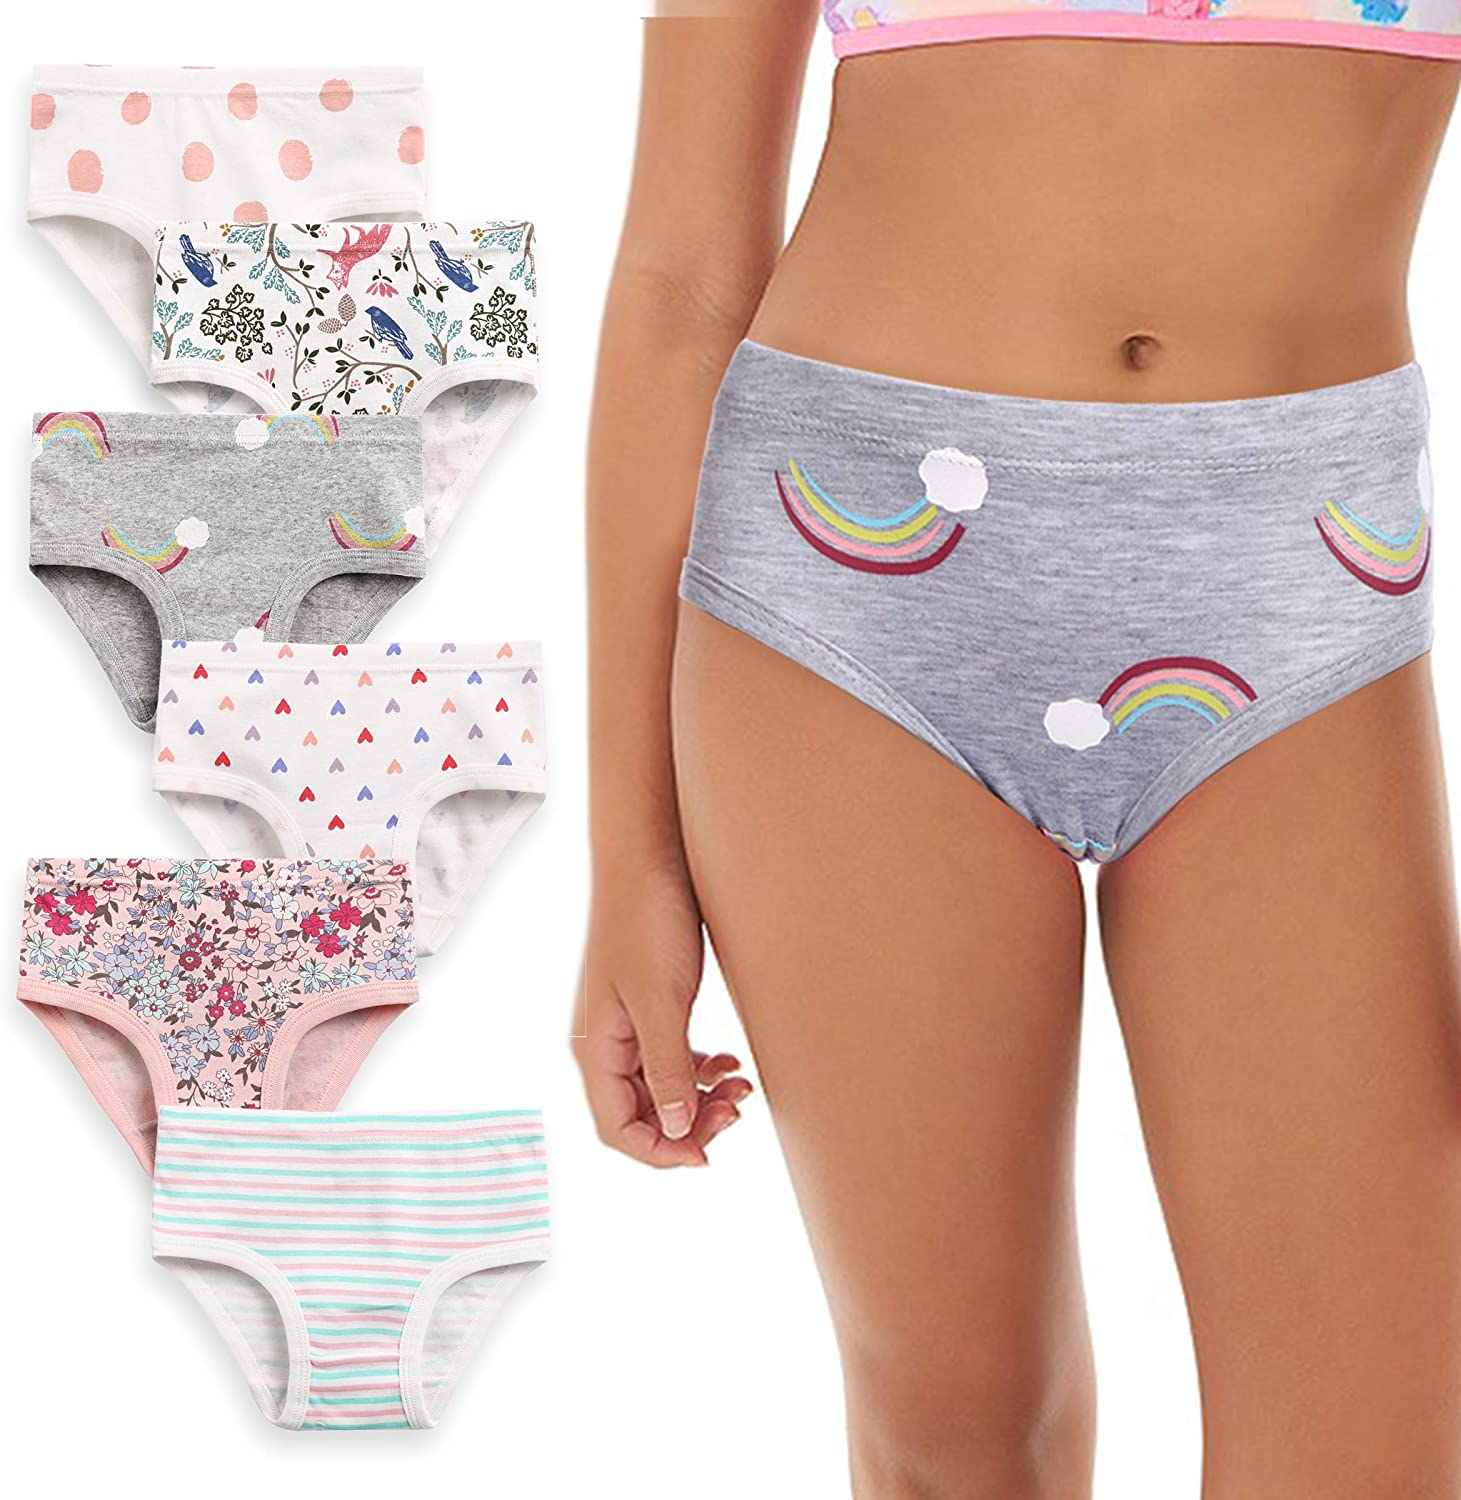 Girls in panties picts Amazon Com Arshiner Girls Soft Cotton Underwear Toddler Panties Kids Briefs 6 Pack 5 6 Years Clothing Shoes Jewelry